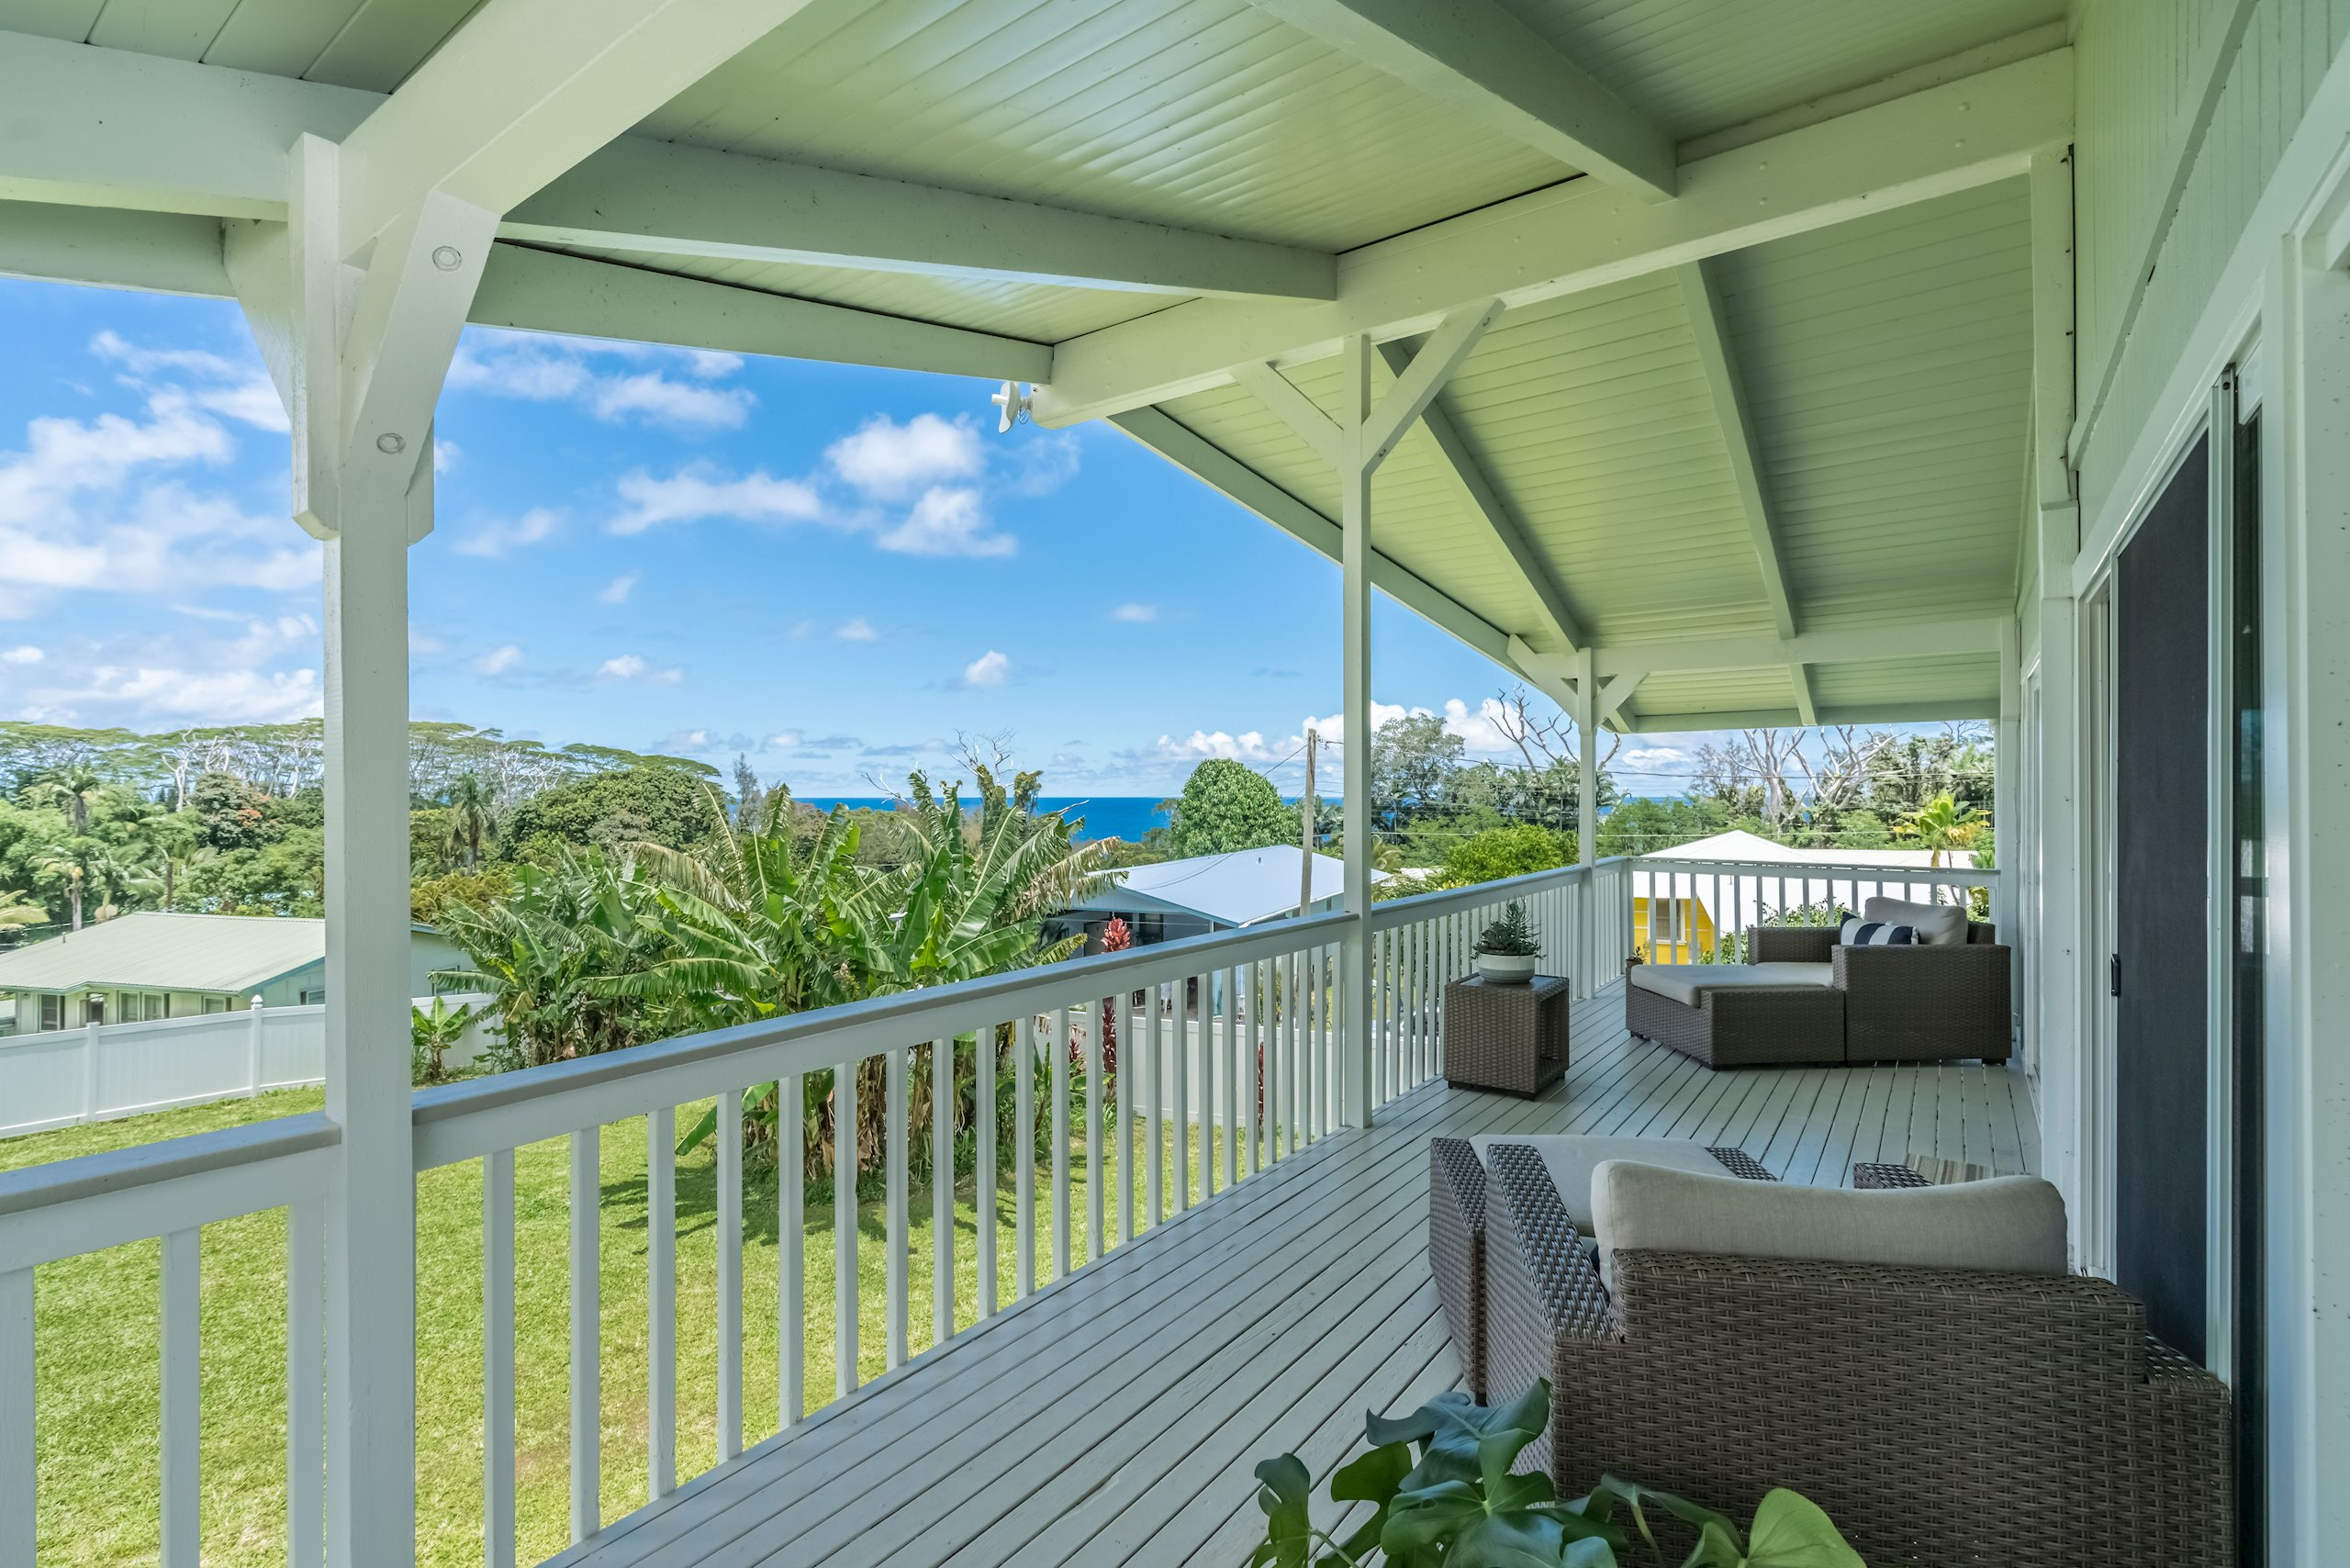 Large wrap-around ocean view deck offers plenty of space for lounge furniture, outdoor dining table, a reading nook, or crafts.